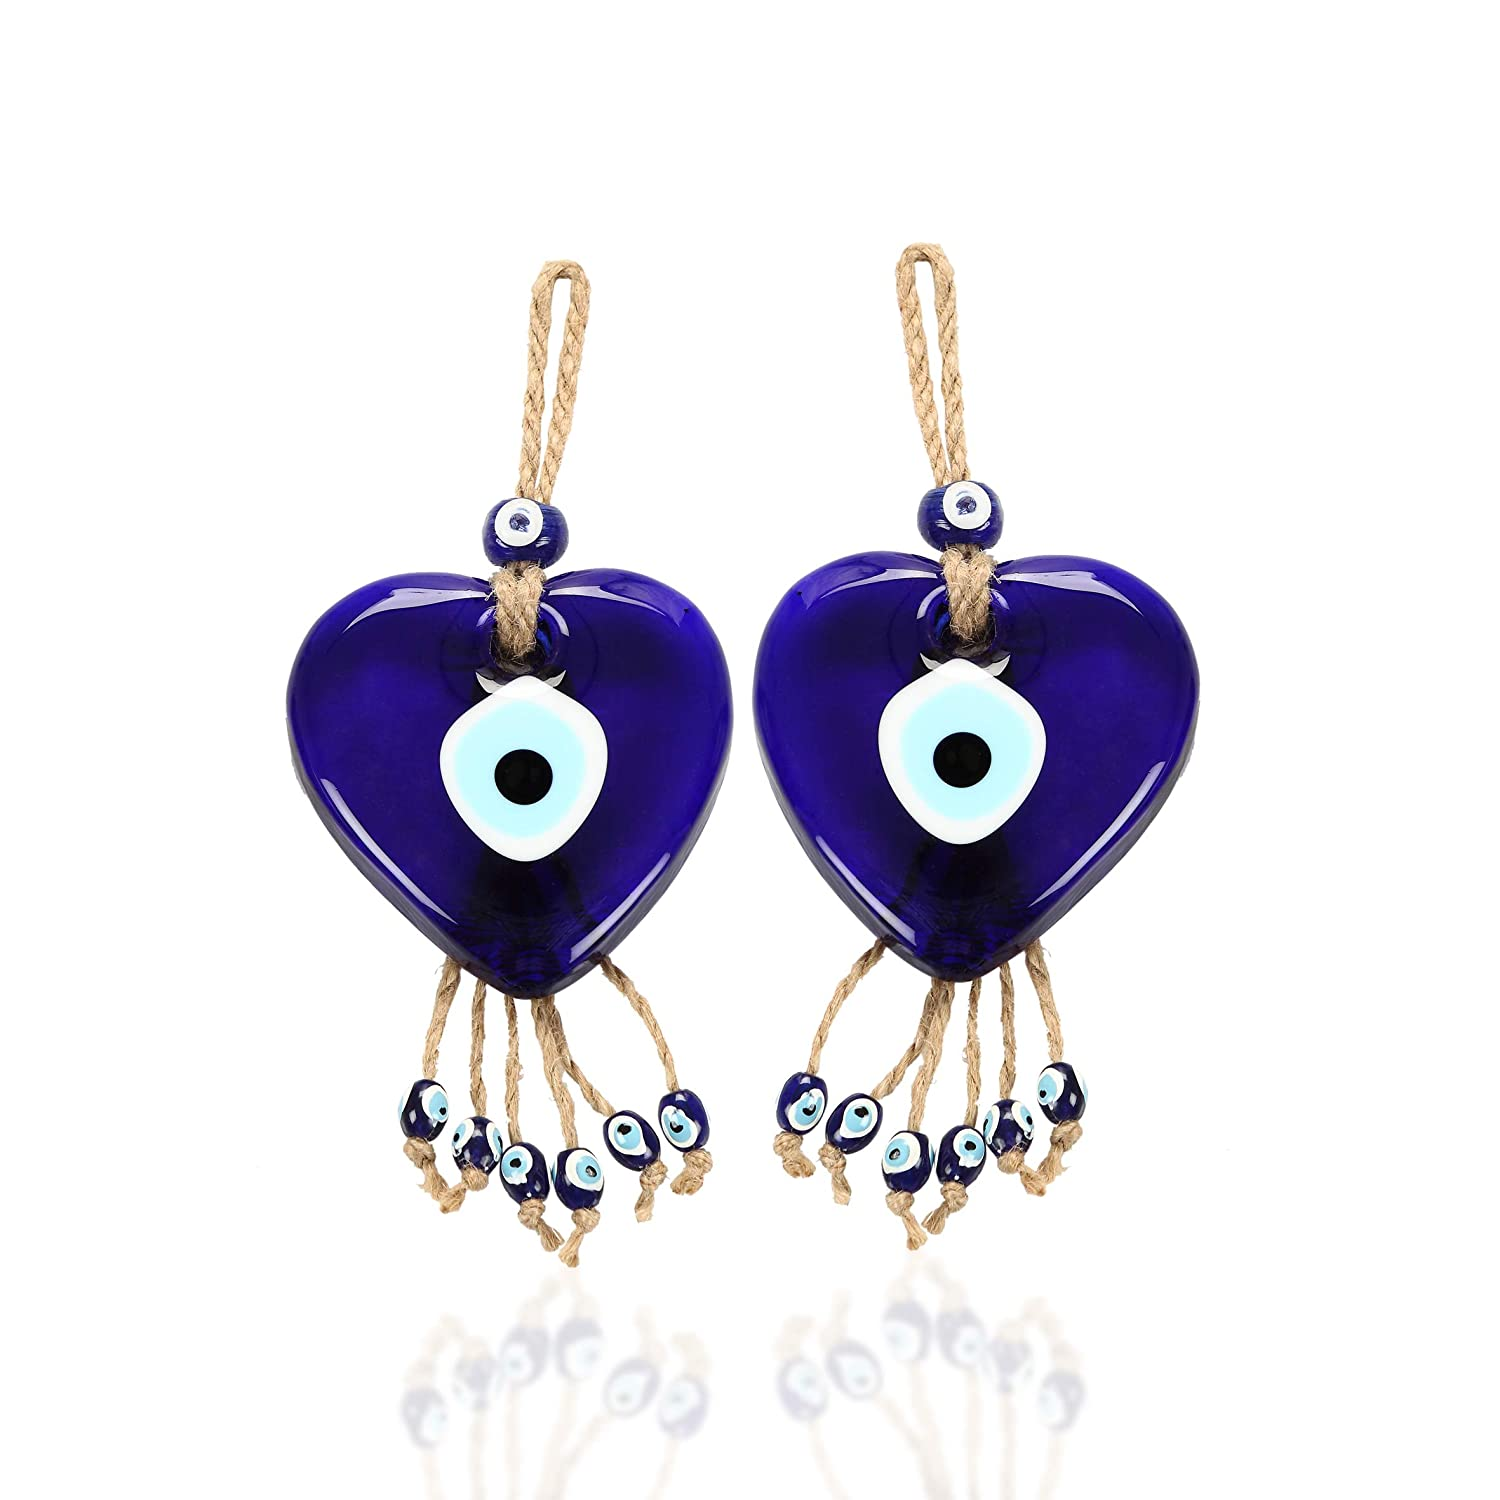 Set of 2 Heart Shaped Glass Blue Evil Eye Wall Hanging Decorative Wall Talisman Good Luck Charm Gift for Protection/&Blessing Authentic /& Unique Gift Idea